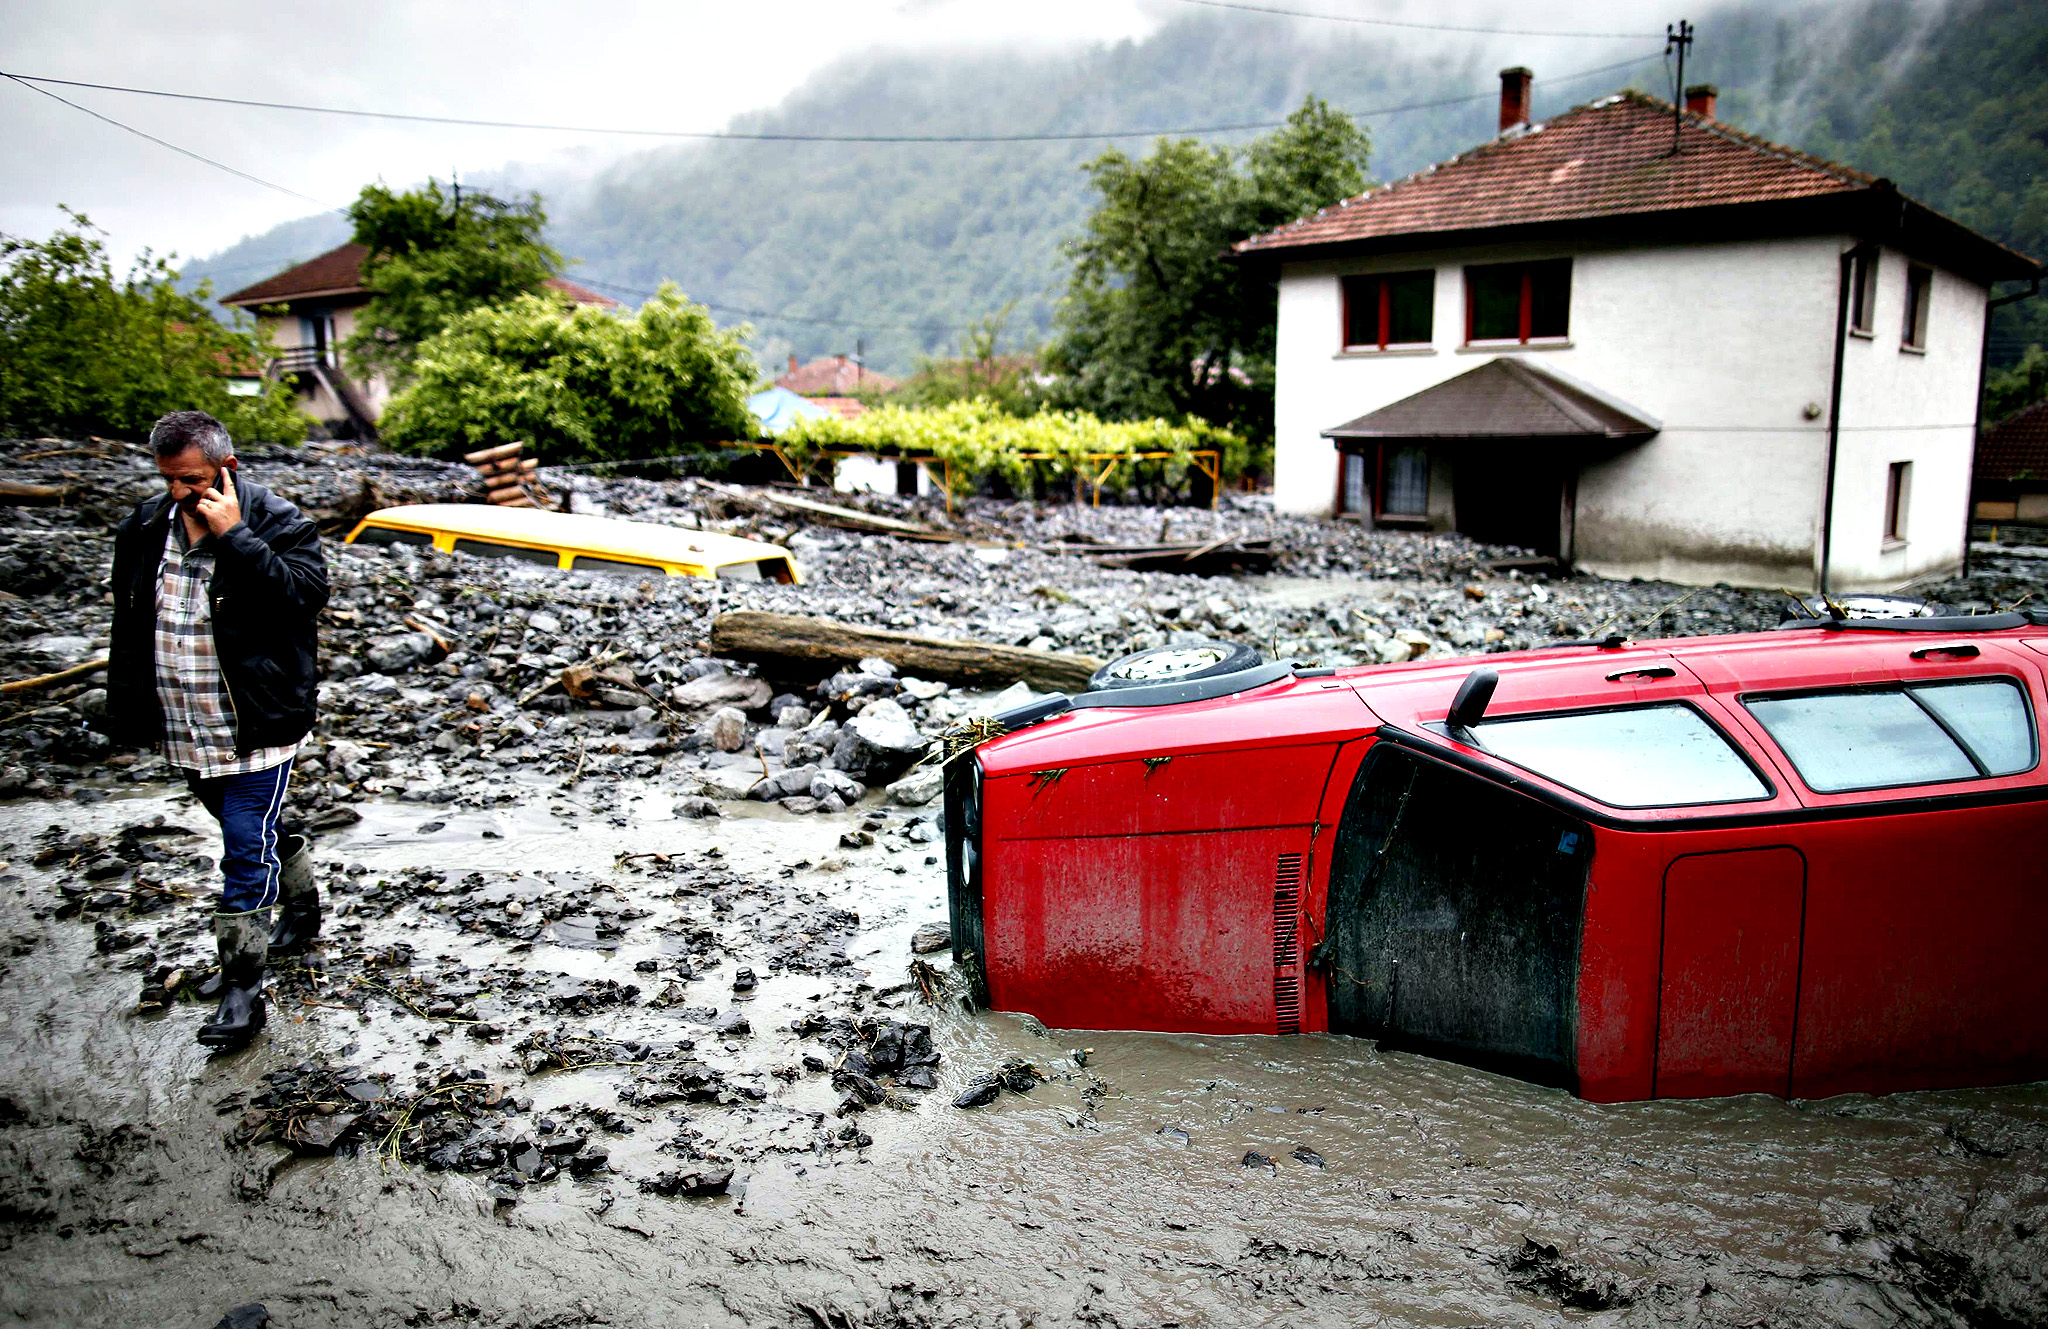 Asim Skopljak talks on a mobile phone as he walks near a car stranded in mud on a street that was hit by floods in Topcic Polje, near Zepce May 16, 2014. The heaviest rains and floods in 120 years have hit Bosnia and Serbia, killing five people, forcing hundreds out of their homes and cutting off entire towns.